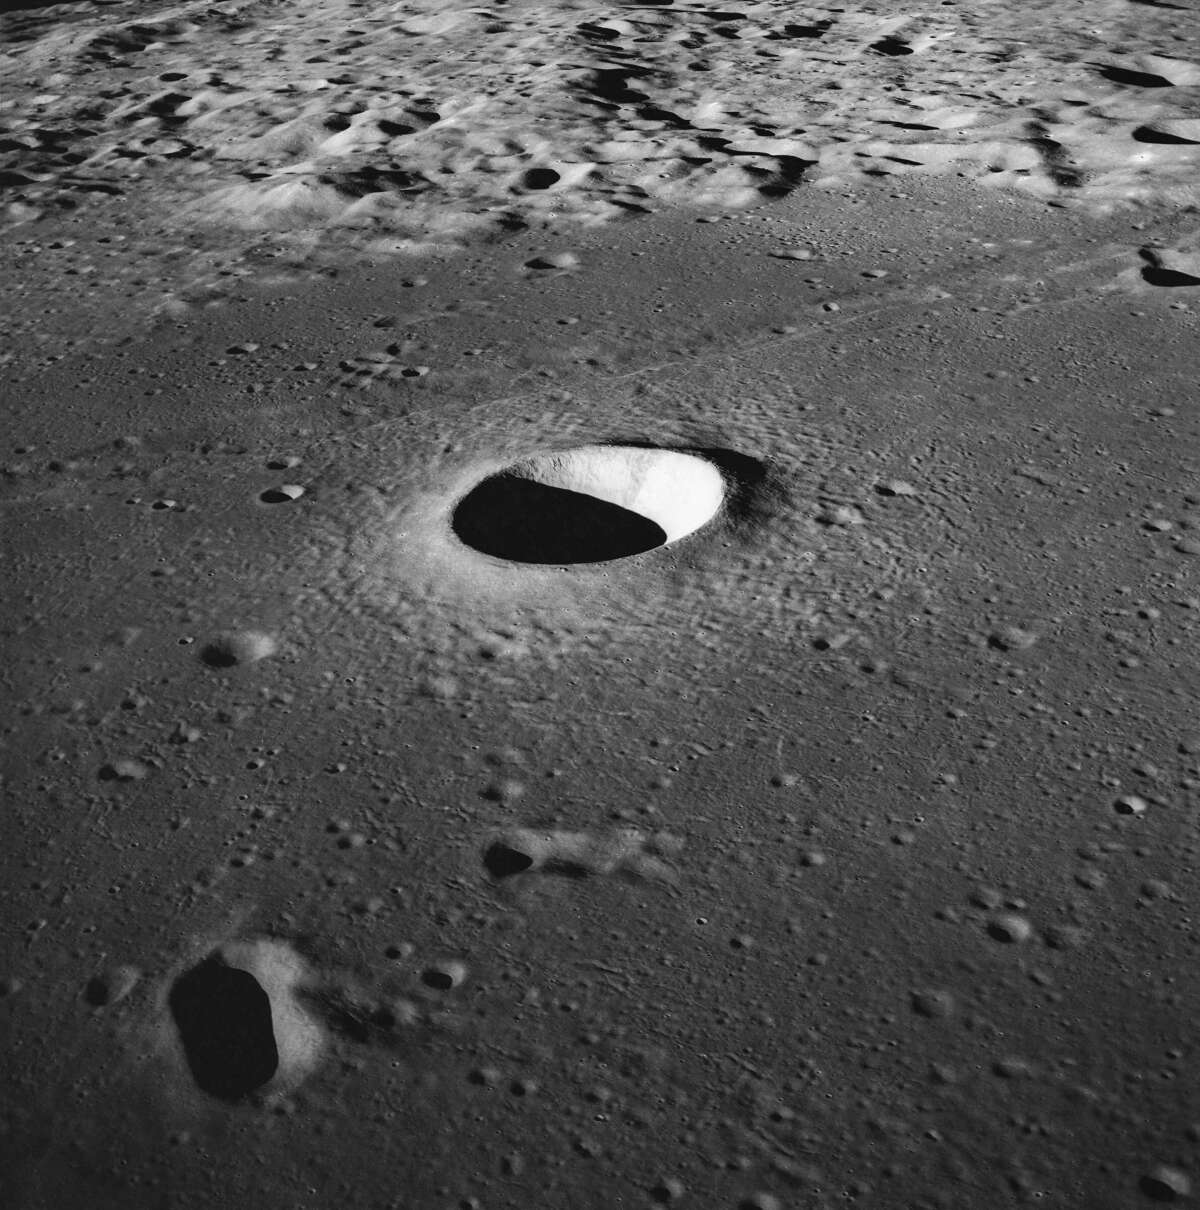 Artificial intelligence helps count craters on the moon